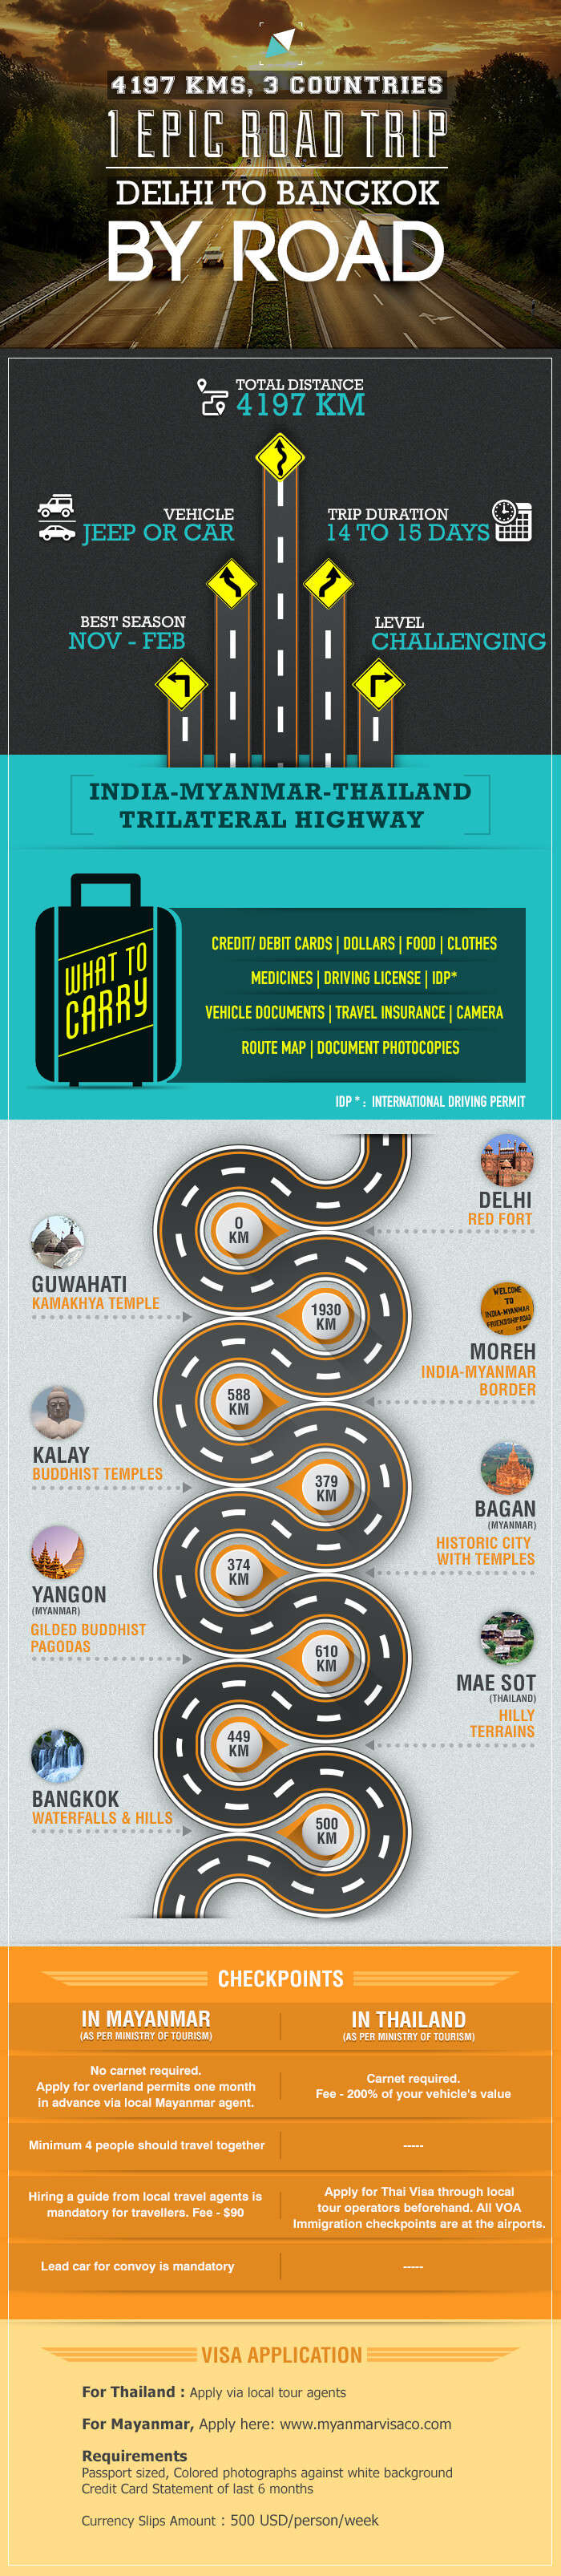 The Epic Road Trip - New Delhi to Bangkok- infographic